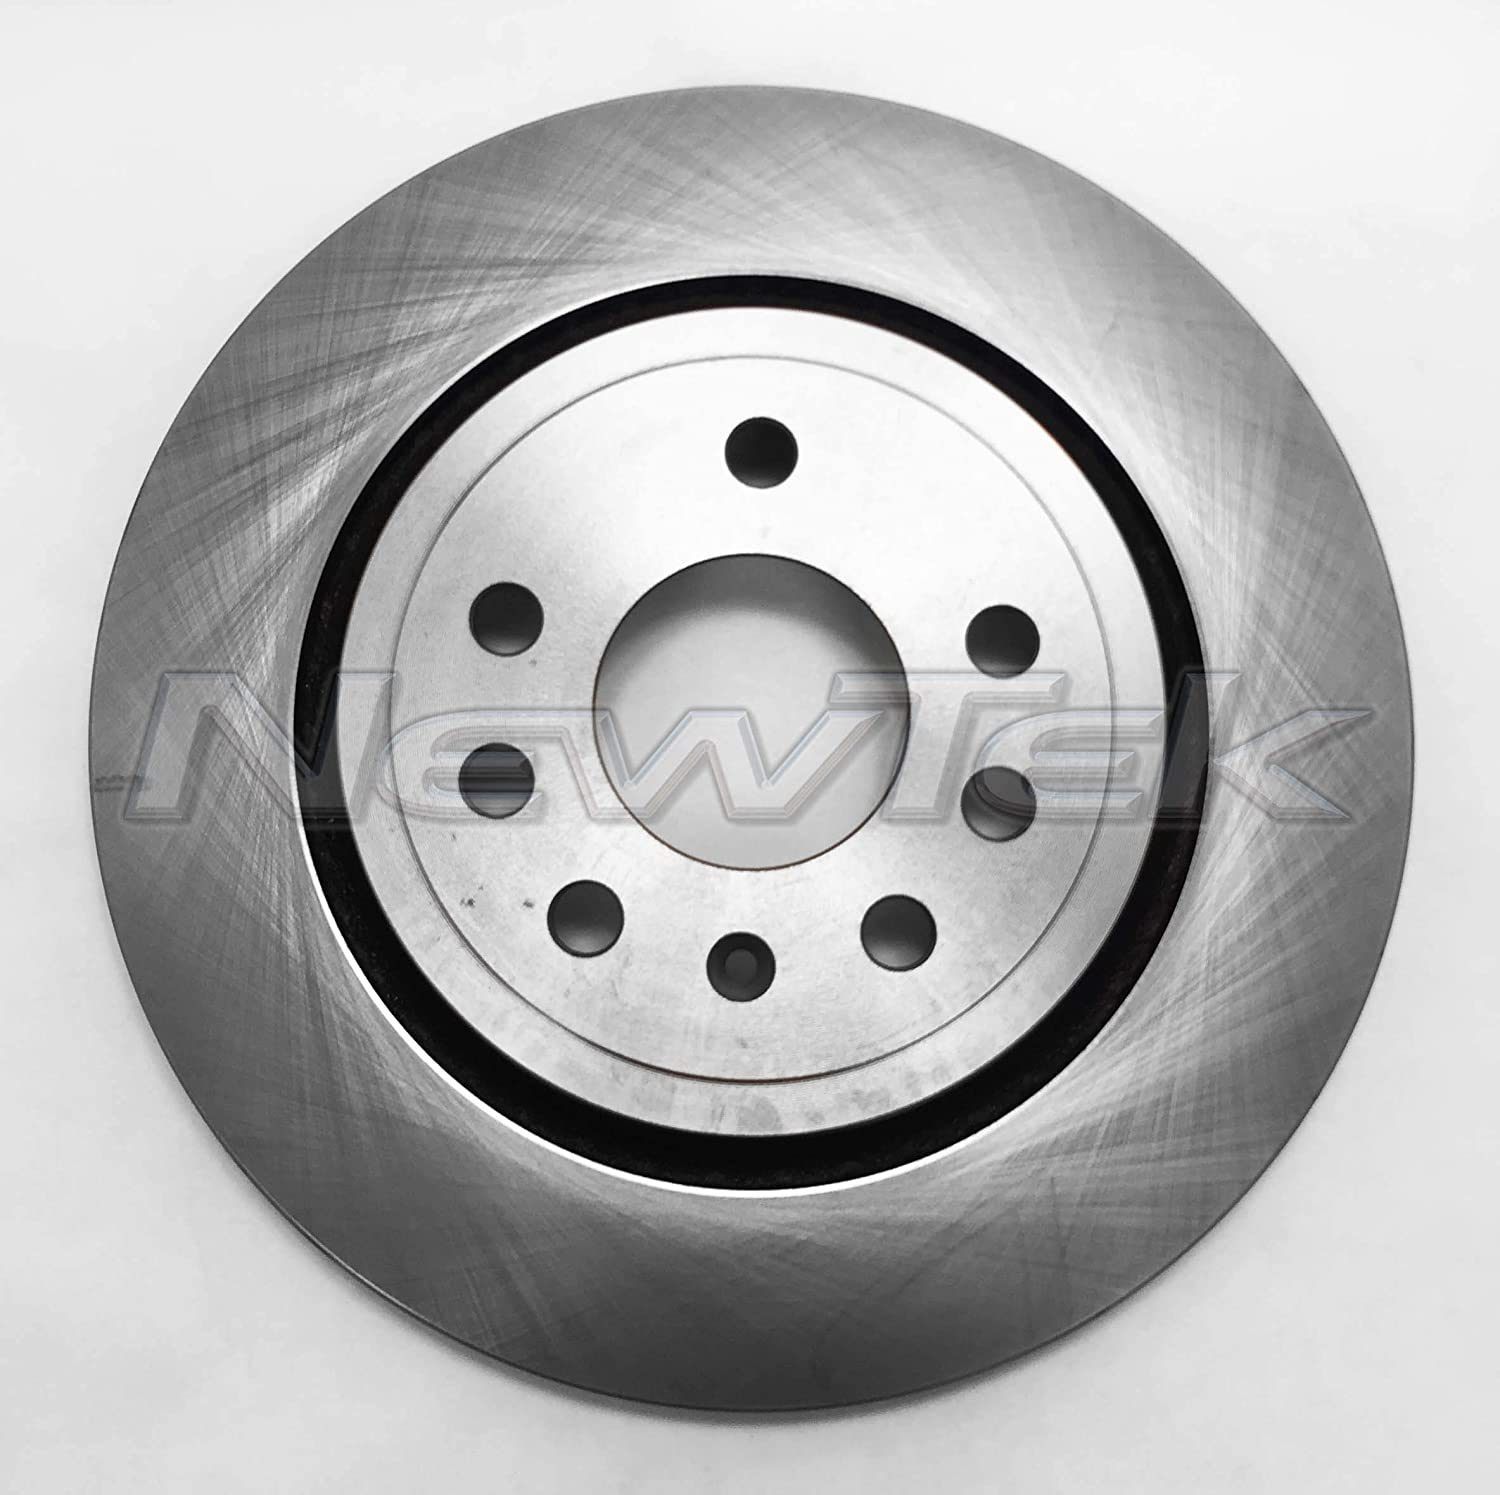 New Baltimore Mall Disc Brake Rotor 9-3 Max 48% OFF for